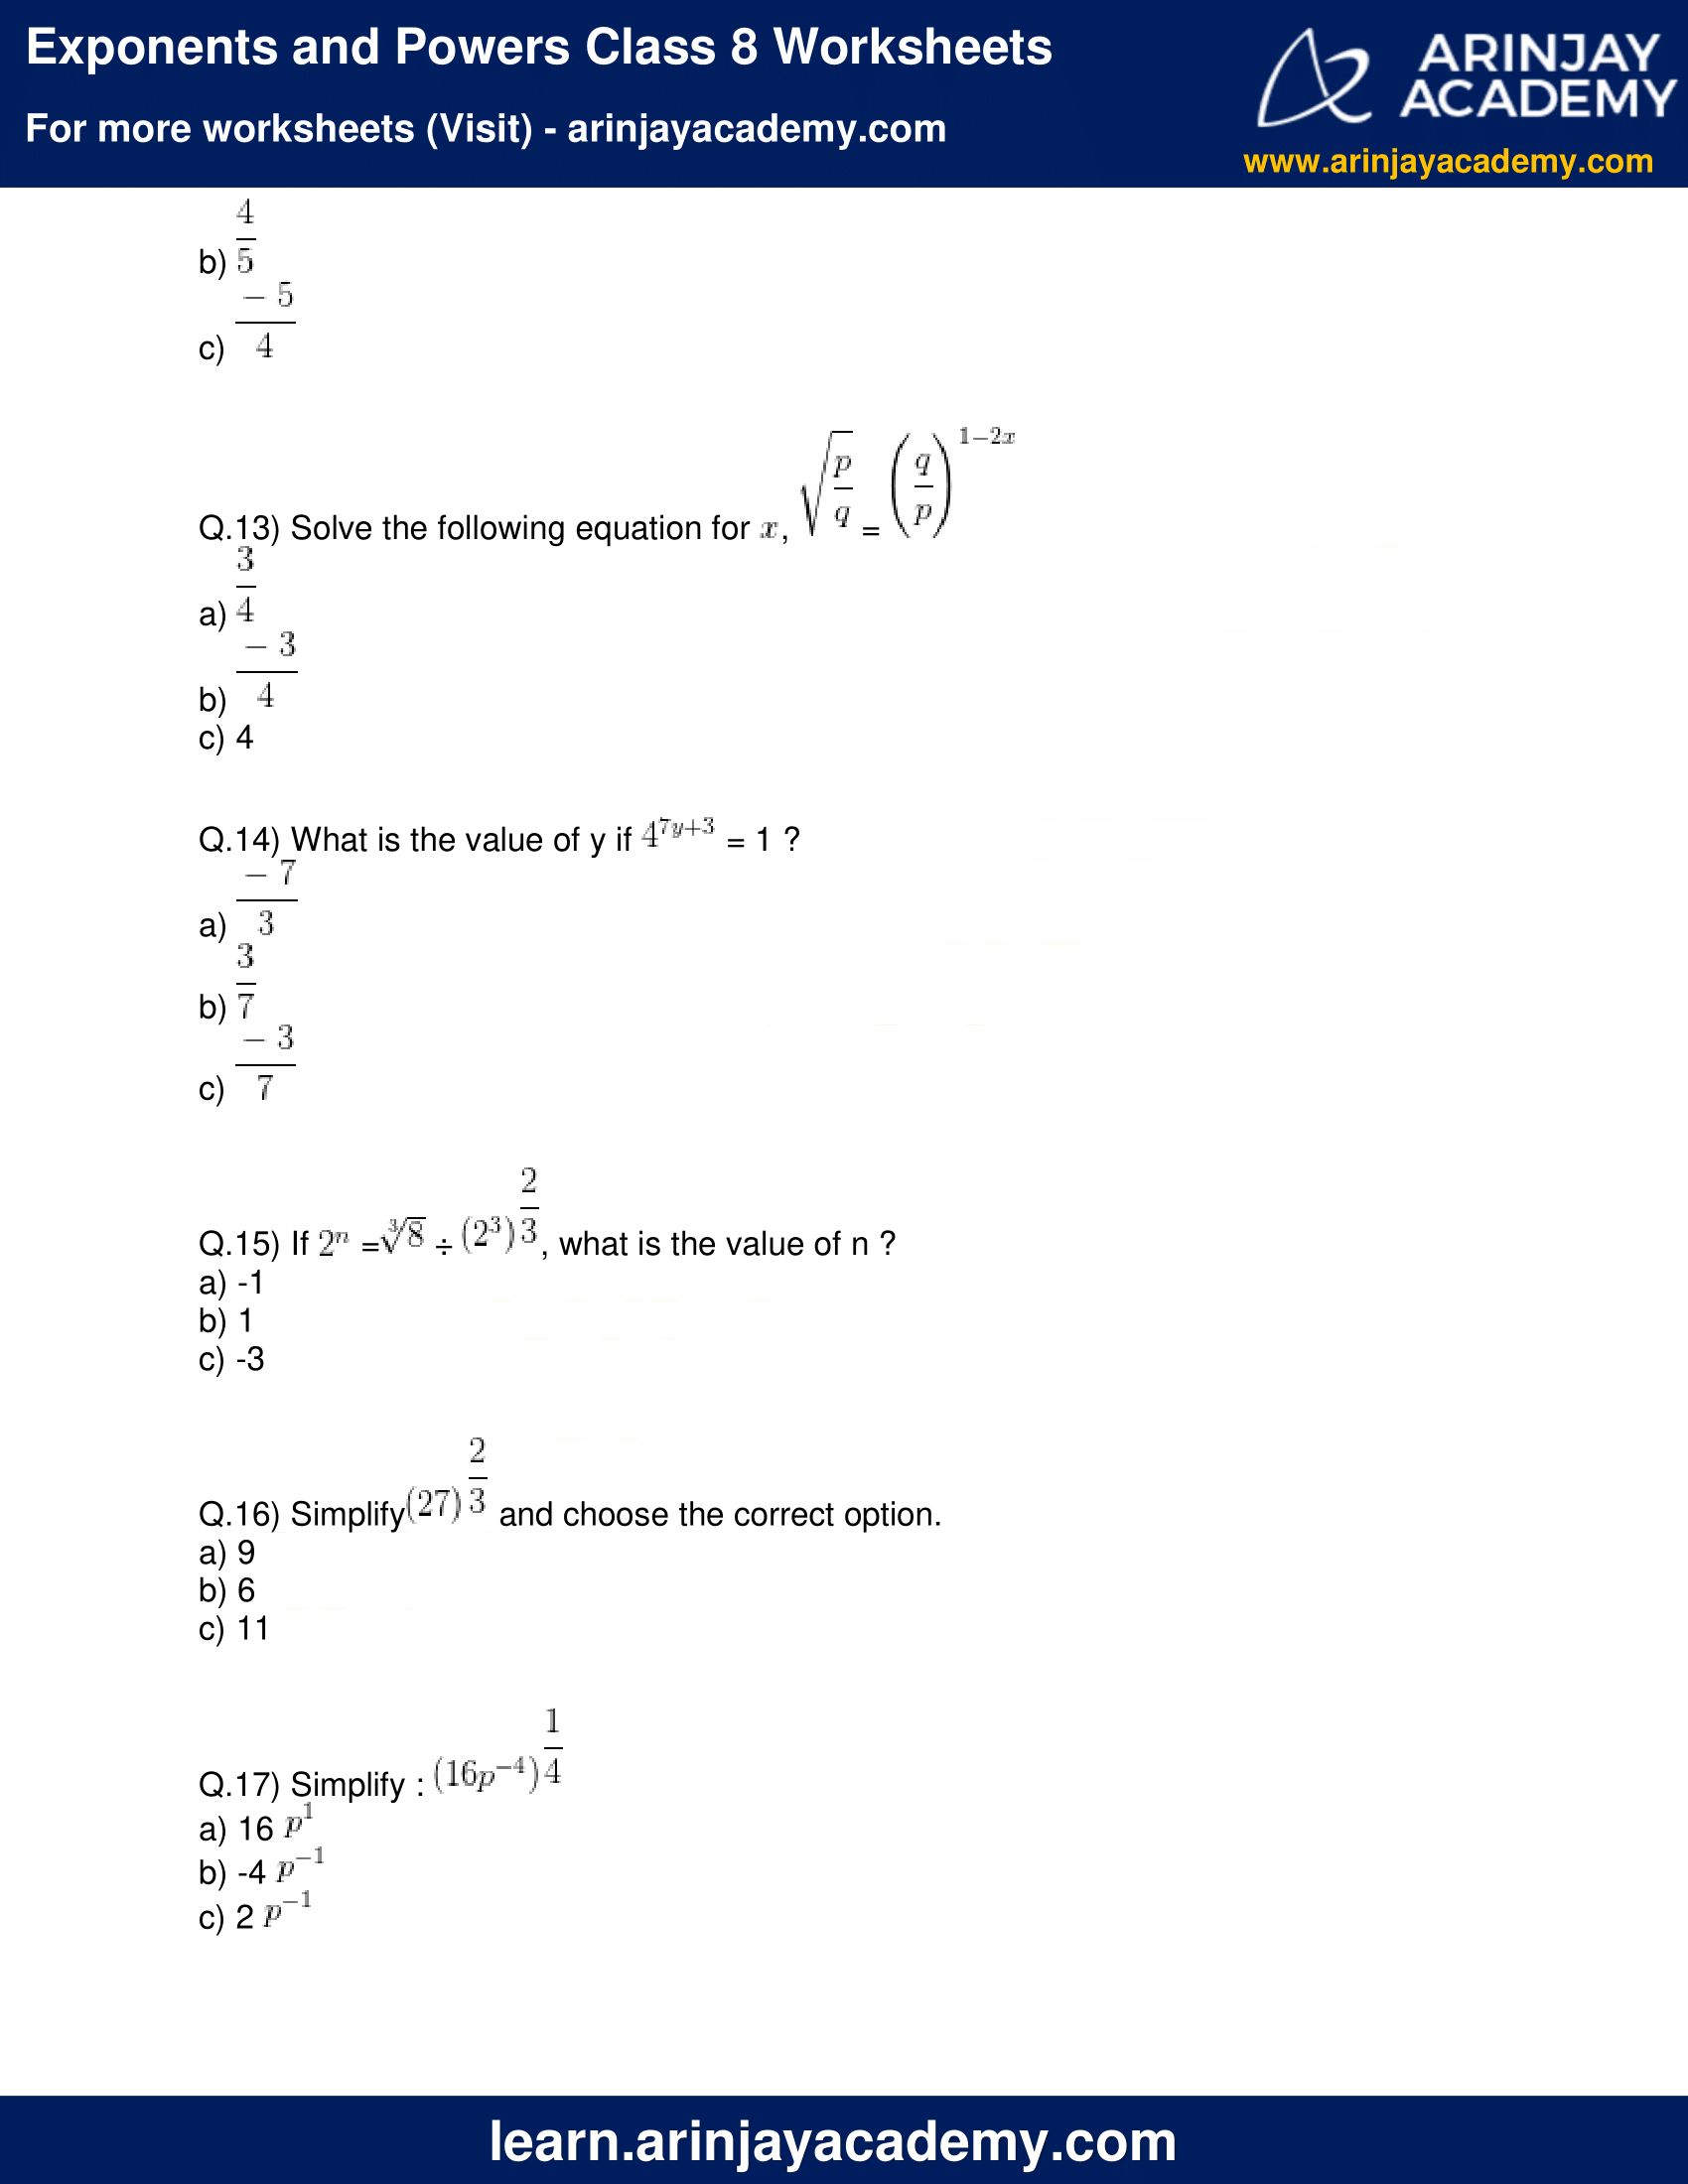 Exponents and Powers Class 8 Worksheets image 3